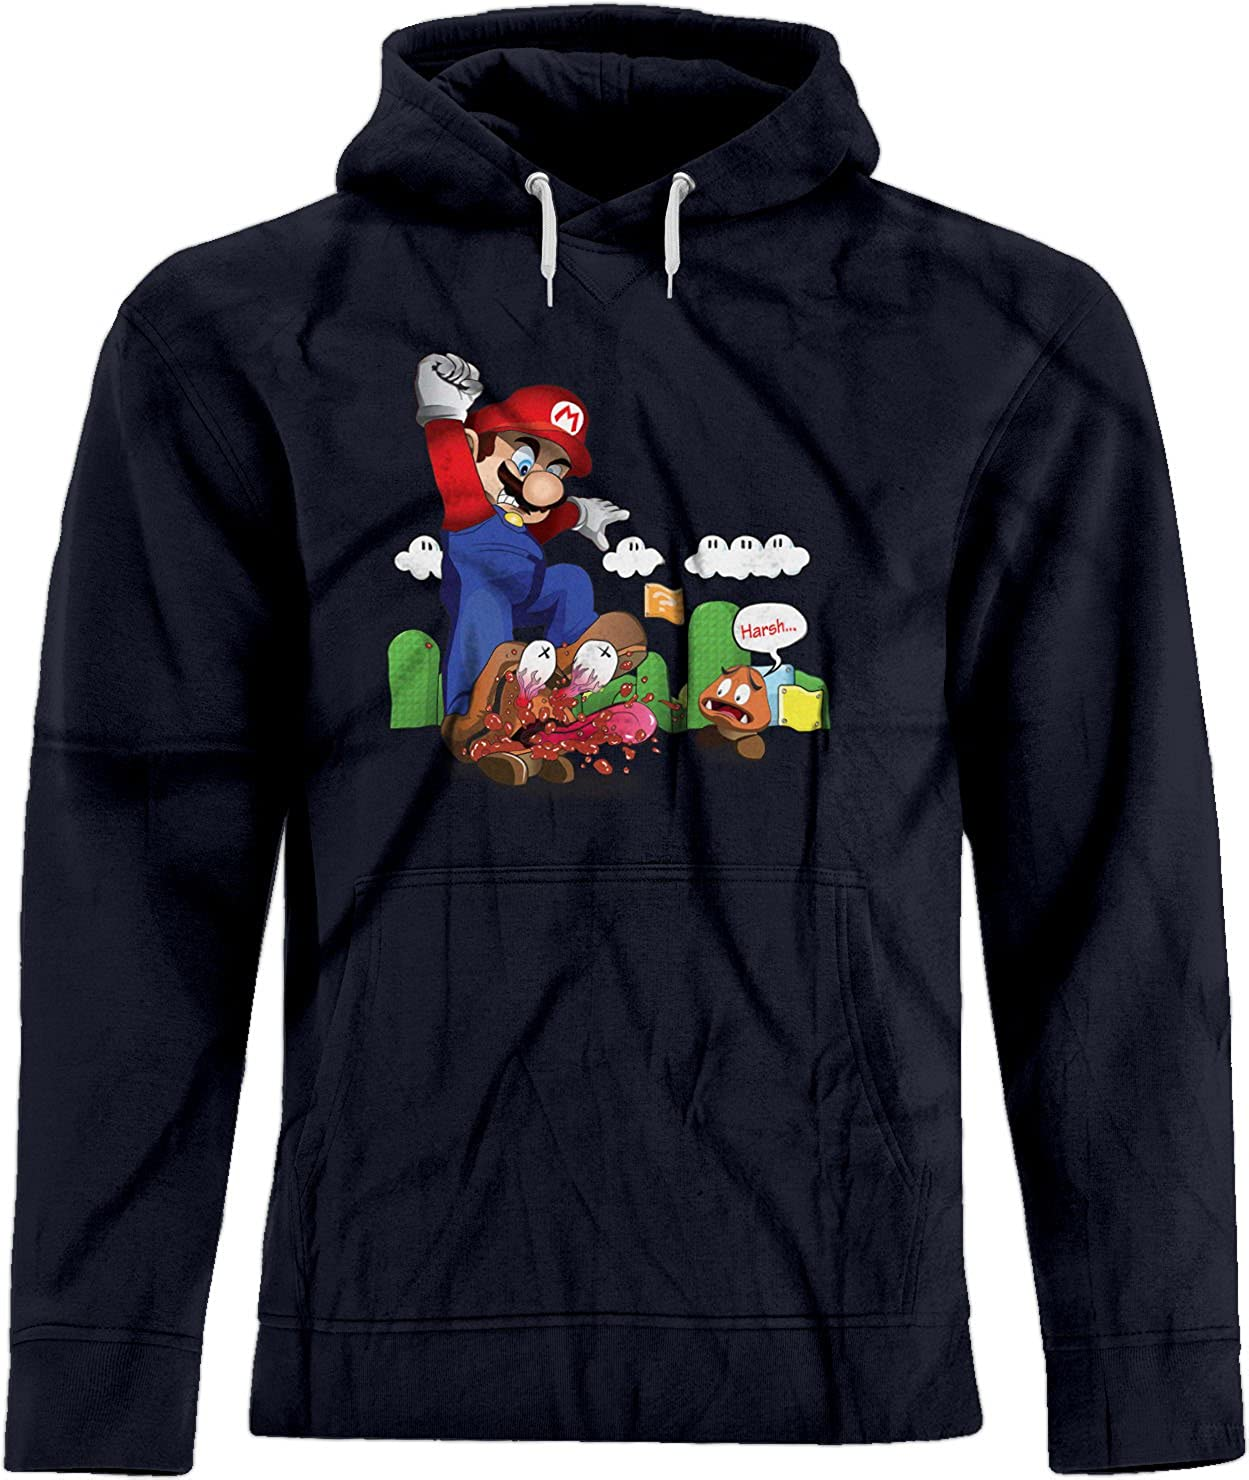 Amazon.com: BSW Mens Super Mario Goomba Squish Harsh Premium Hoodie: Clothing